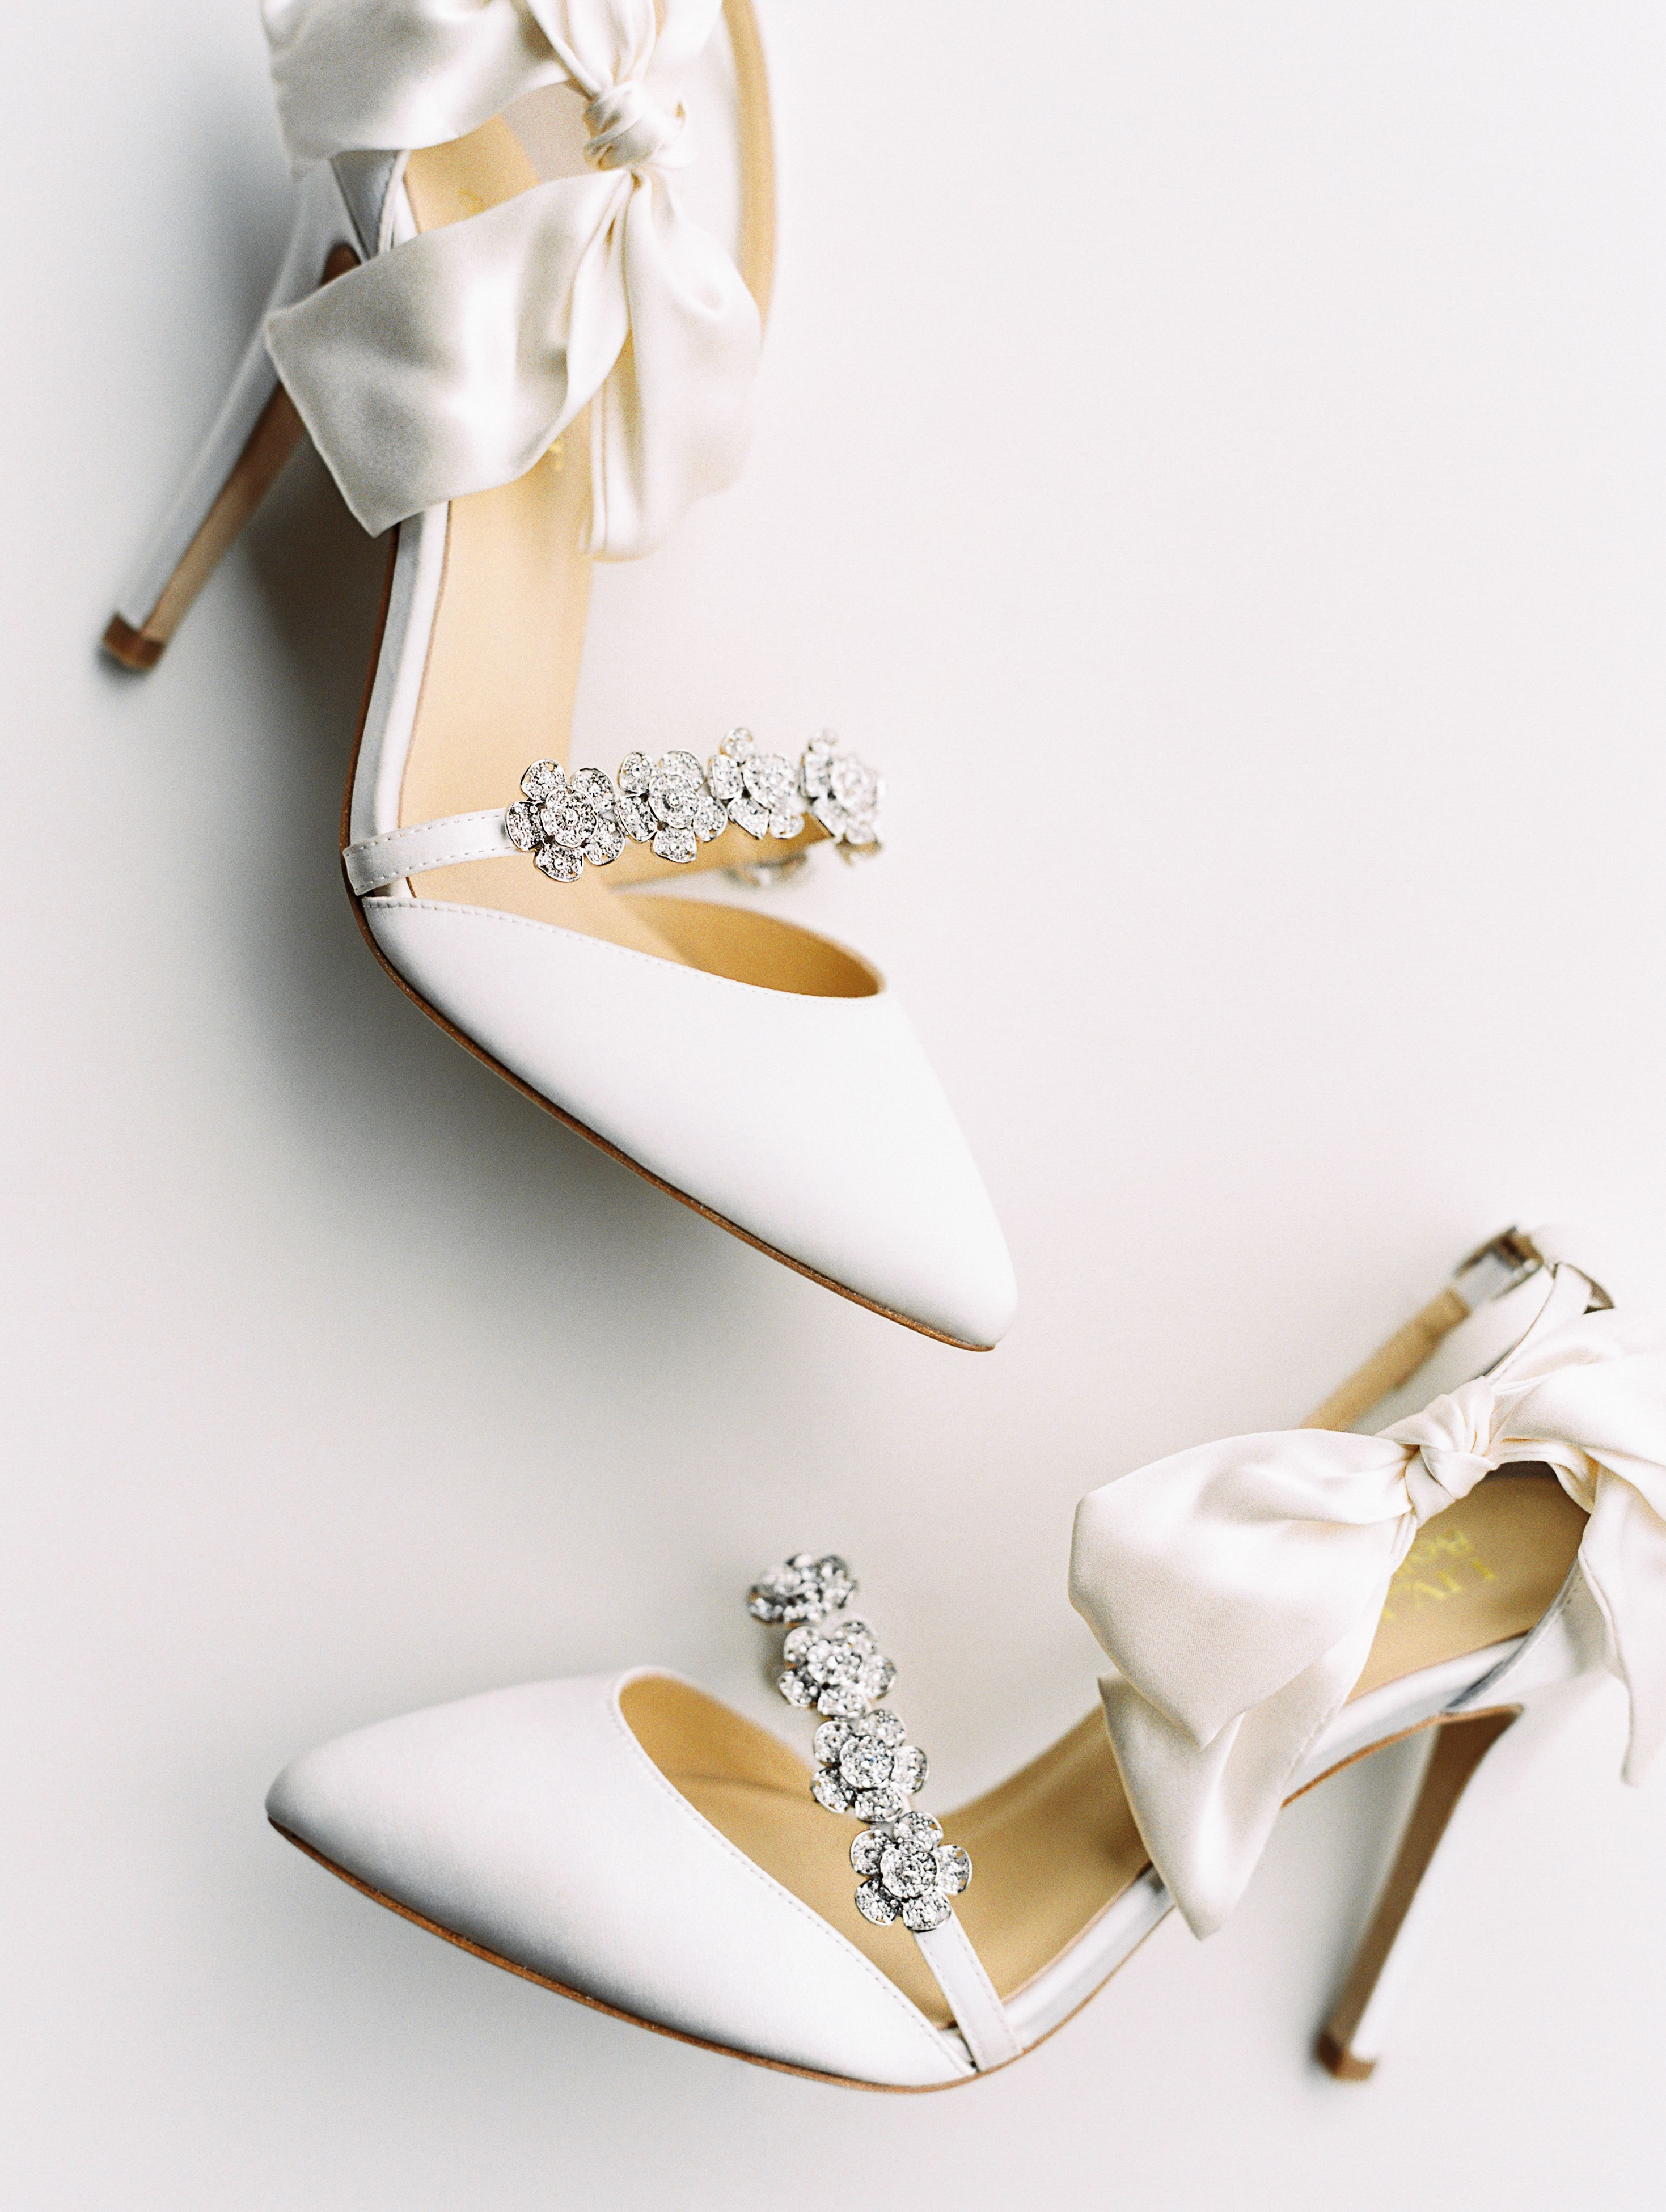 Bow And Jeweled Ivory Wedding Heel By Liv Hart In 2020 Wedding Heels Ivory Wedding Shoes Bridal Heels